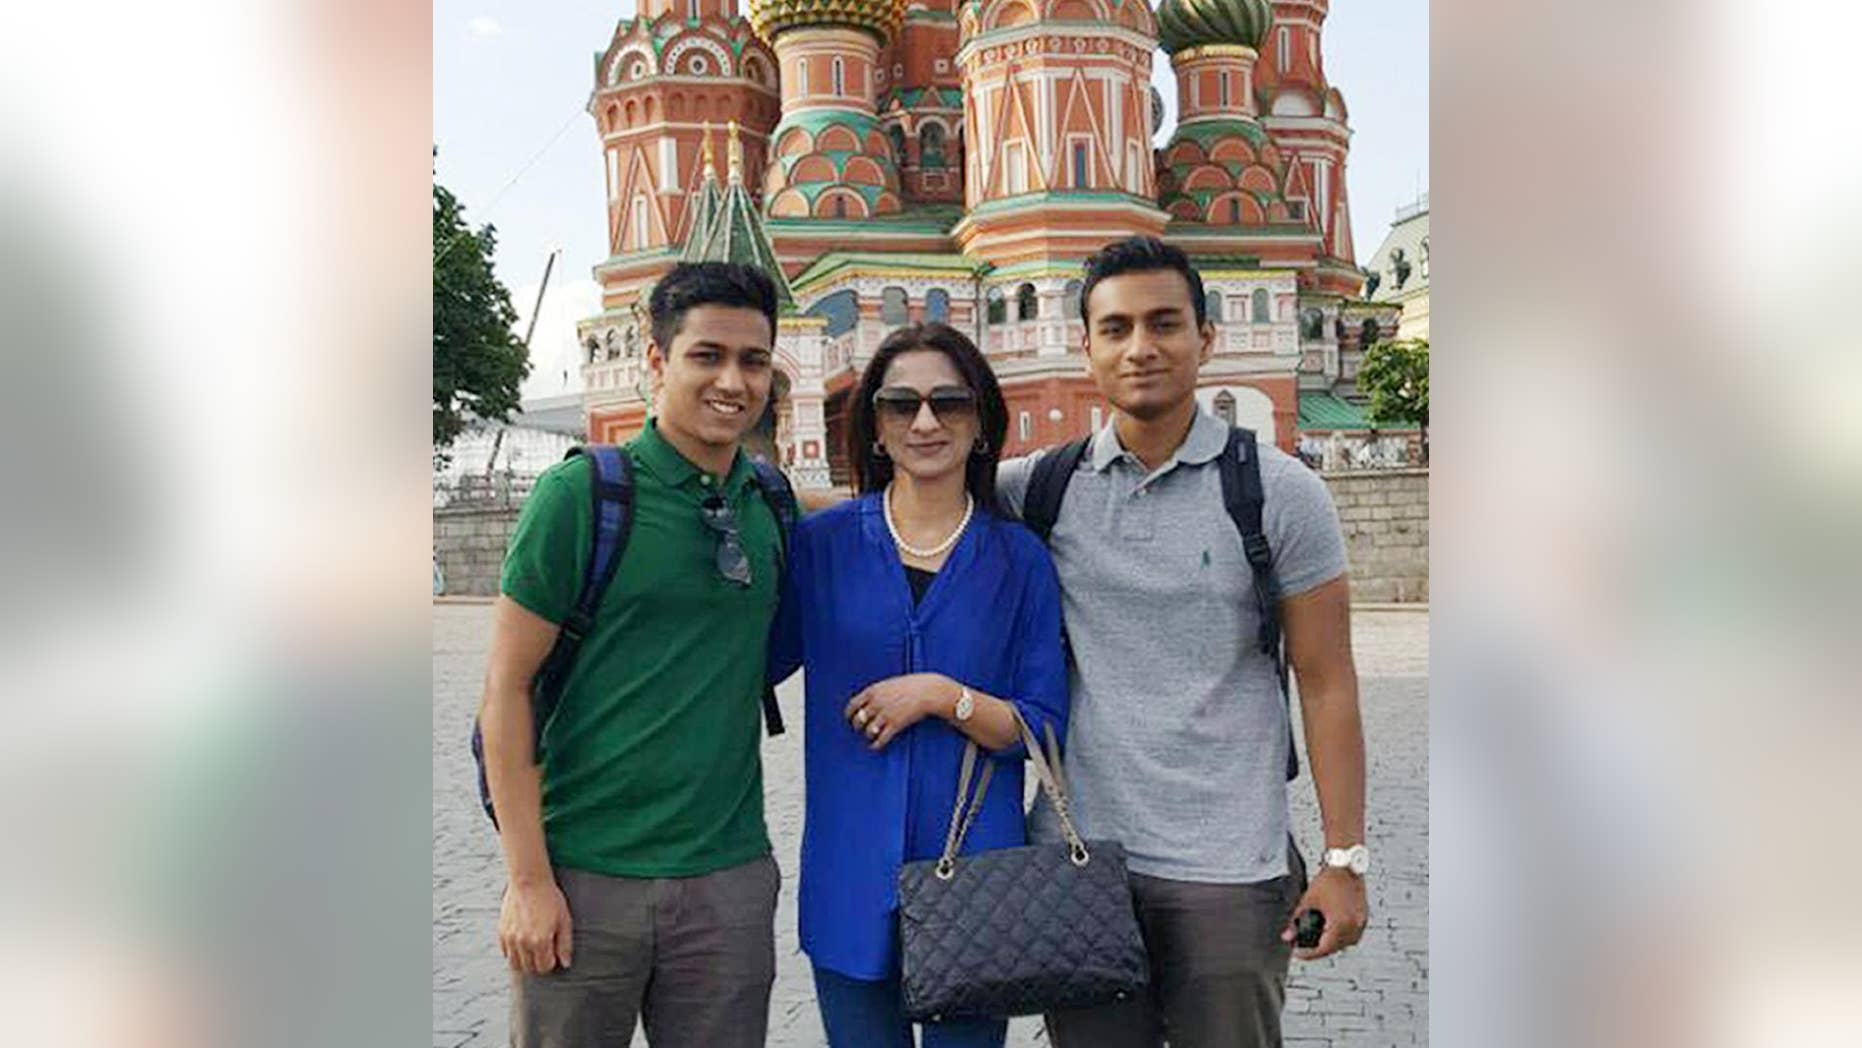 This May 26, 2016, photo, provided by the Hossain Family shows Faraaz Hossain, left, mother, Simeen, center, and brother, Zaraif, right, in Moscow, Russia. When Faraaz Hossain's family received his body after the deadly siege at the Holey Artisan Bakery in Dhaka, Bangladesh, on July 2, 2016, they noticed the palm of his right hand had been sliced clean through. The wound suggested the 20-year-old Faraaz, the family's beloved youngest child, had grabbed the attacker's sword and tried to fight back. (Hossain Family photo via AP)